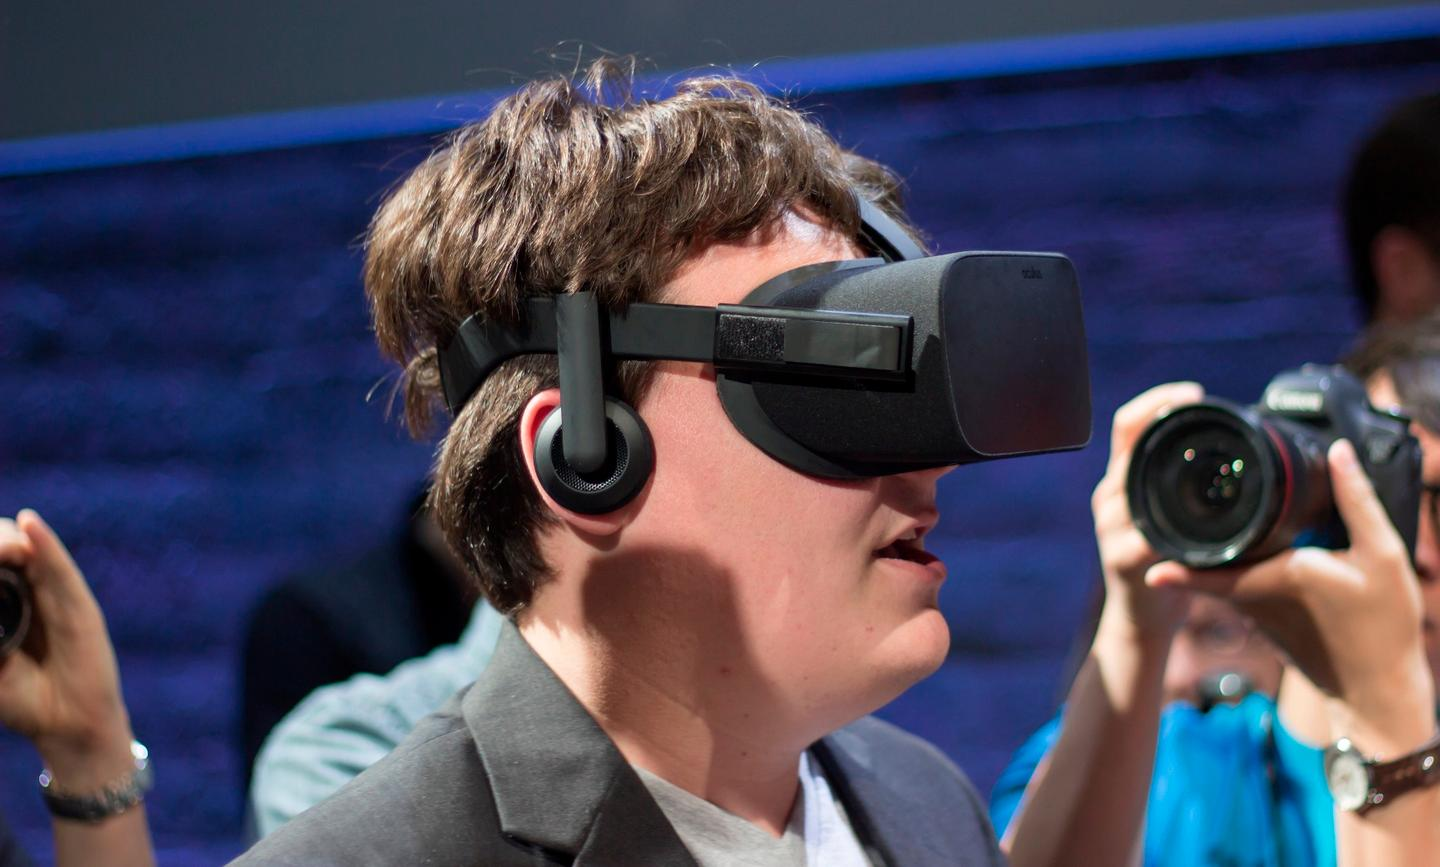 Oculus founder Palmer Luckey modelling the consumer Oculus Rift at a 2015 launch event